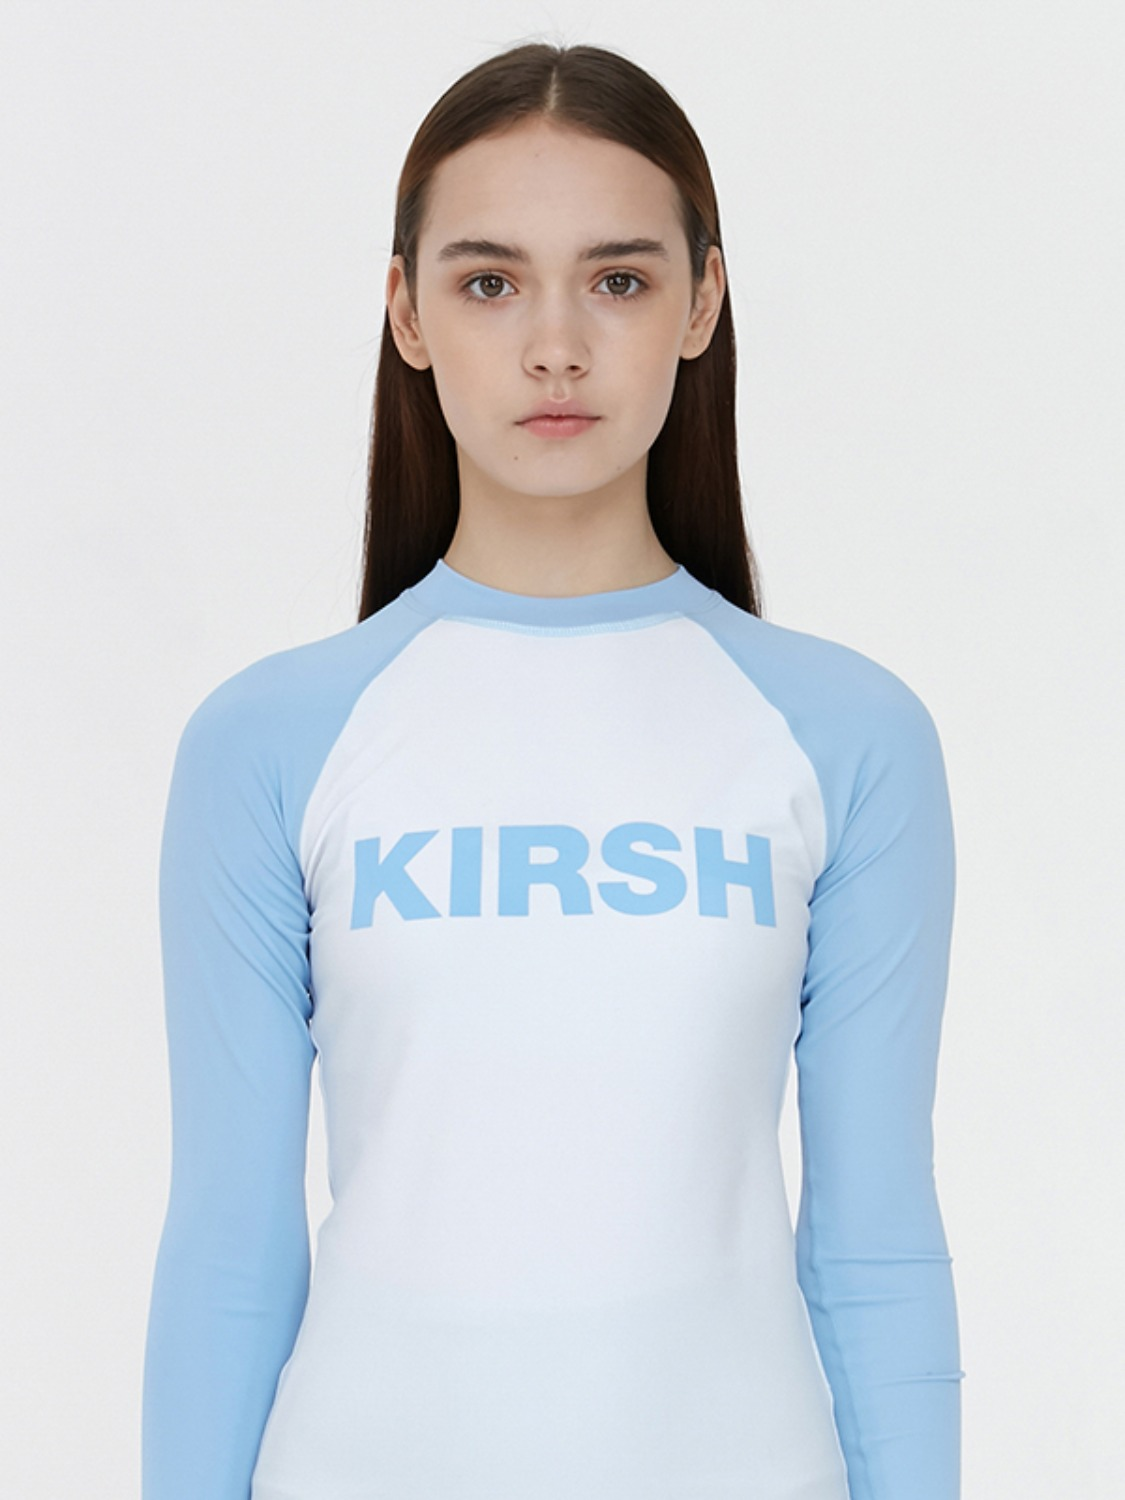 KIRSH LOGO RASHGUARD JH [LIGHT BLUE]